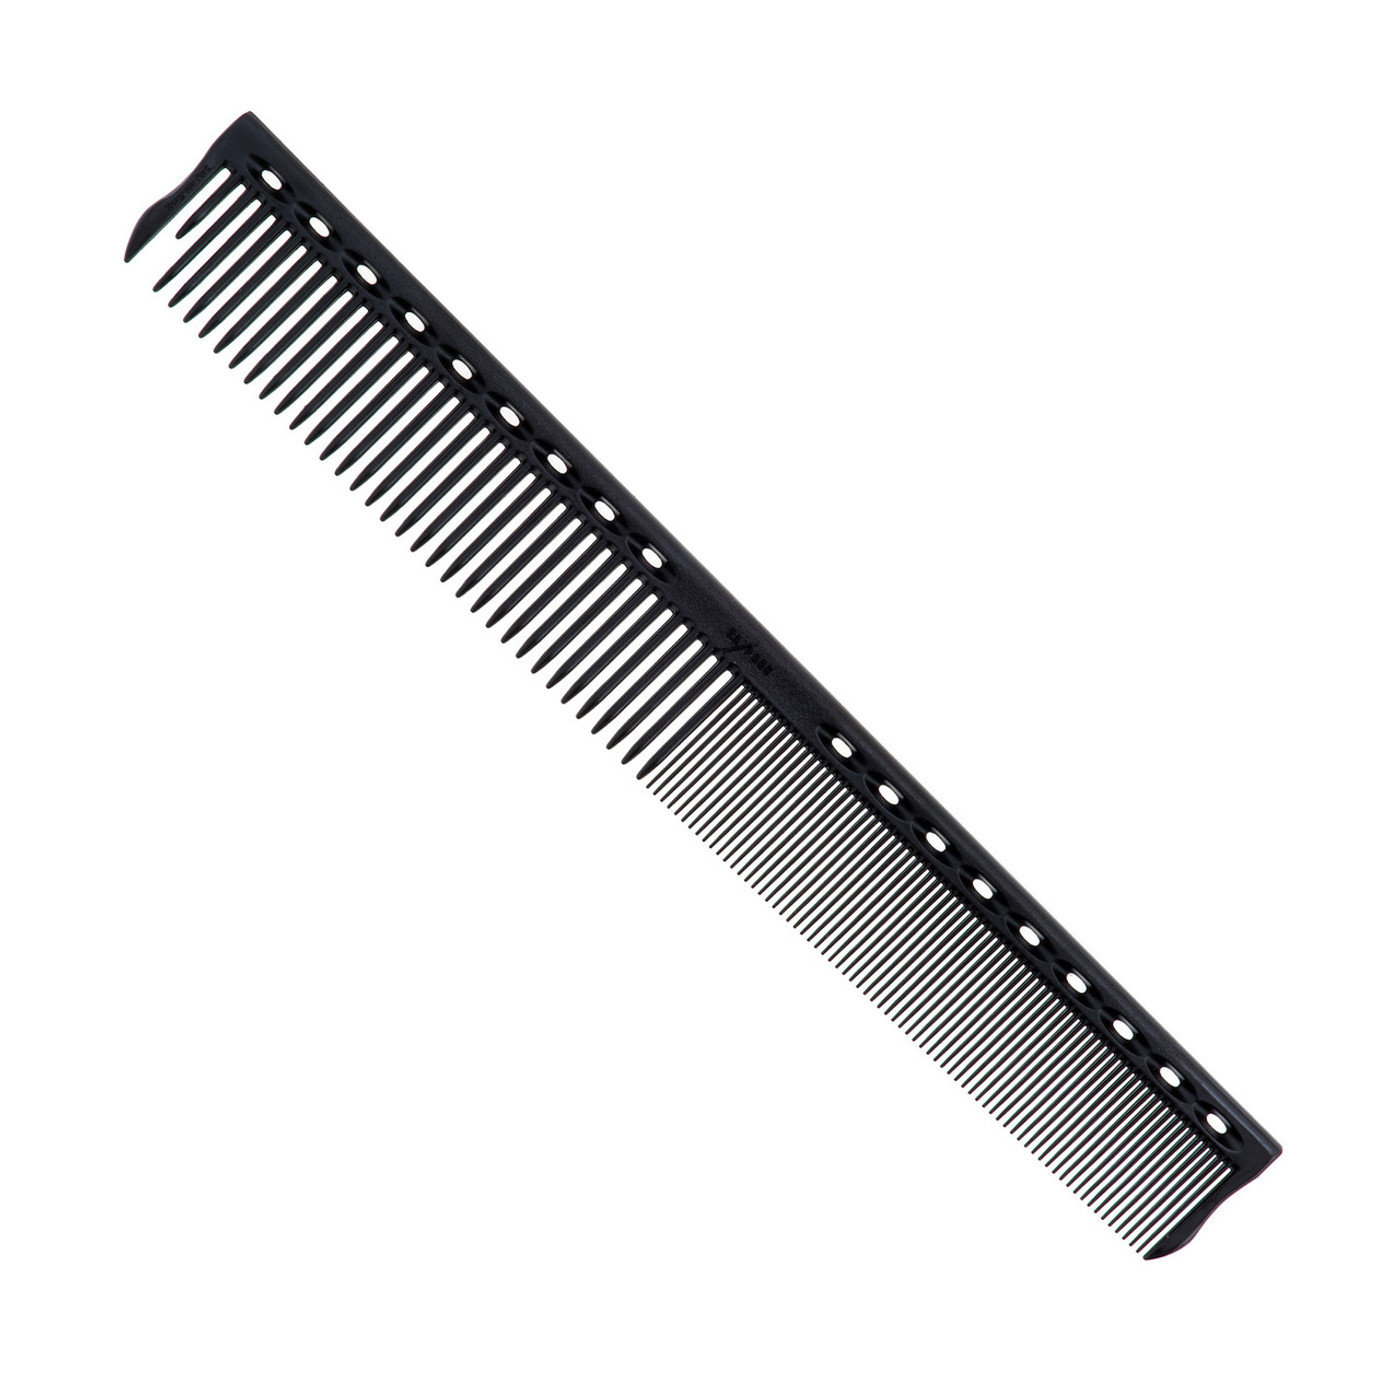 YS Park 345 Cutting Guide Comb by YS Park Professional